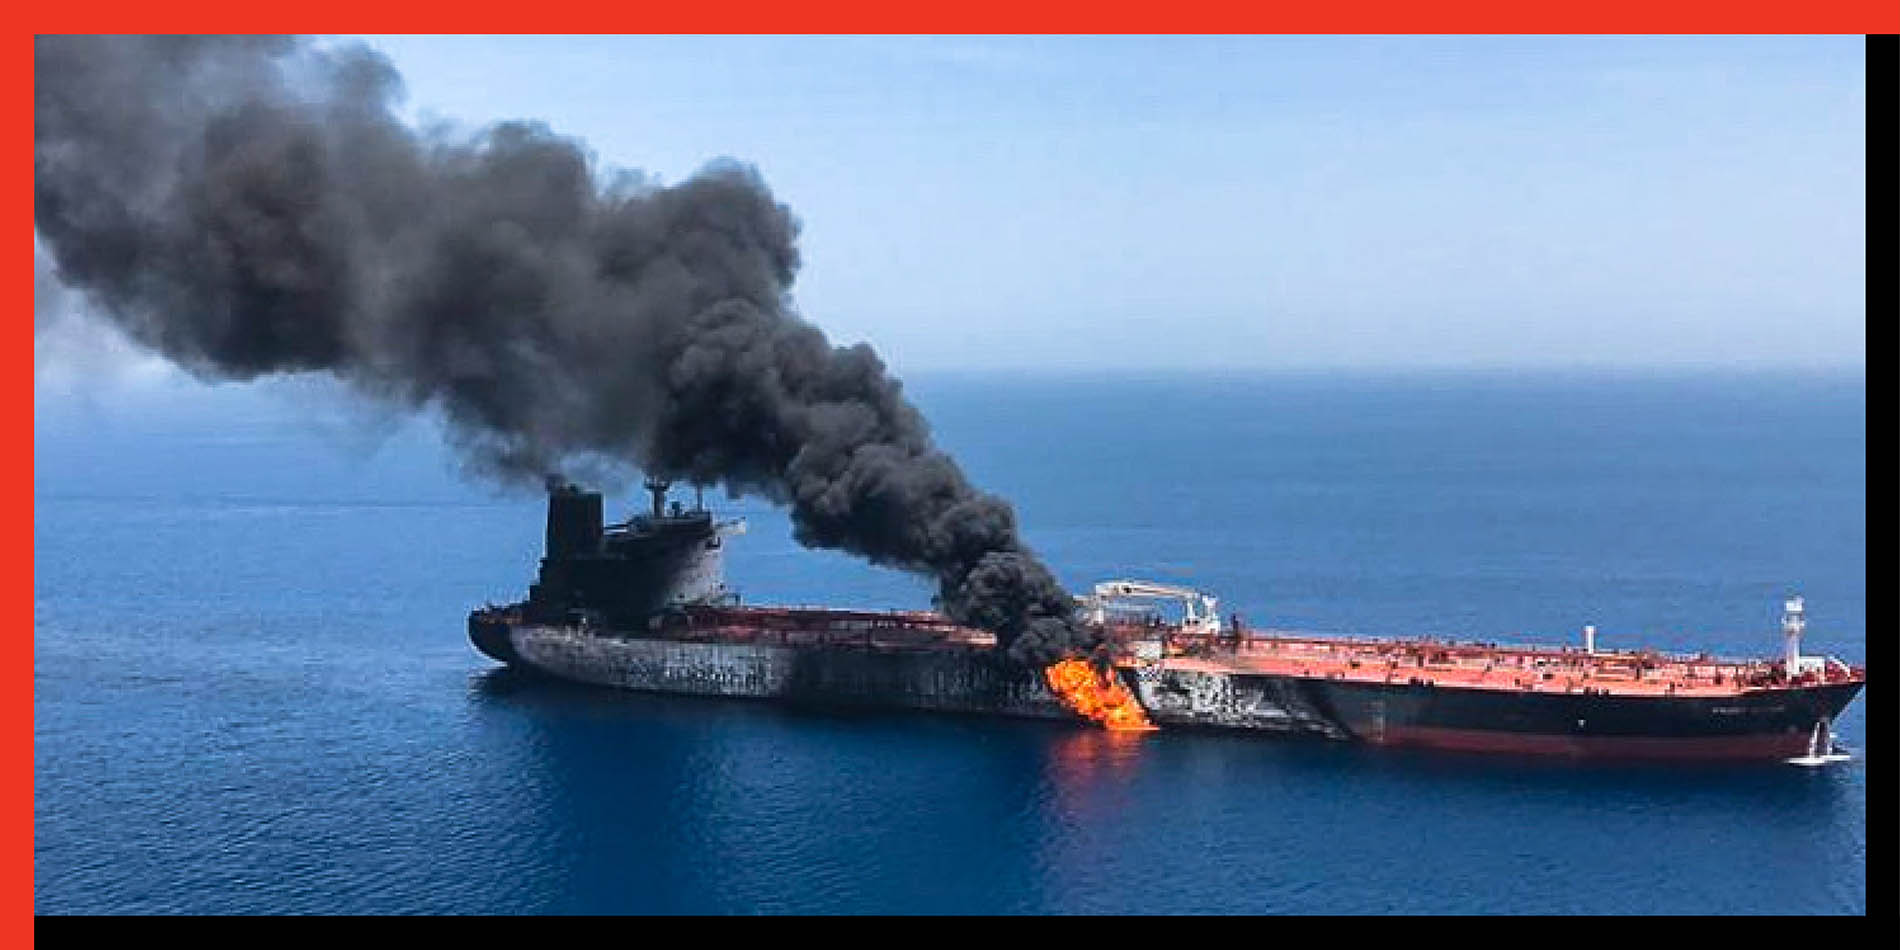 A picture obtained from Iranian News Agency ISNA on June 13, reportedly shows fire and smoke billowing from an oil tanker said to have been attacked in the waters of the Gulf of Oman. The attack on two tankers came amid spiralling tensions between Tehran and Washington, which has pointed the finger at Iran over earlier tanker attacks.